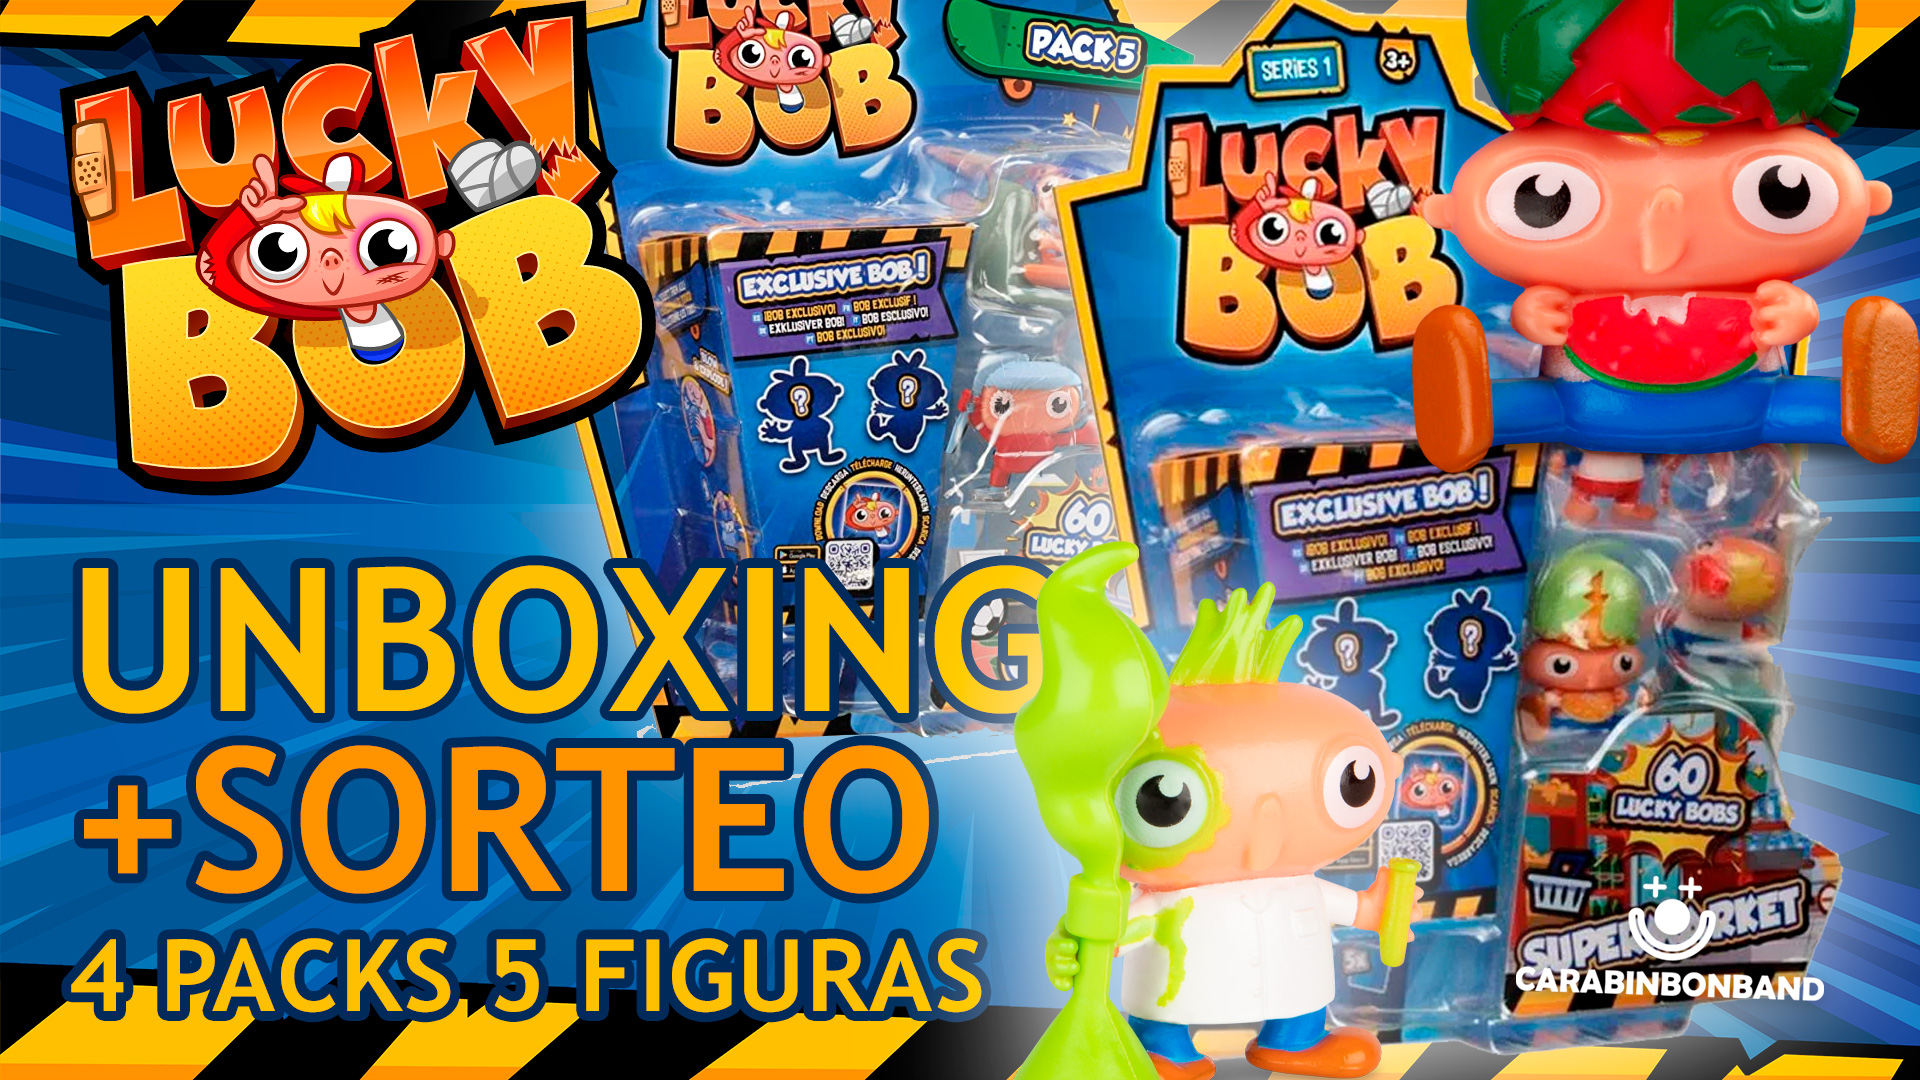 LUCKY BOB - UNBOXING PACKS 5 FIGURES SERIES 1